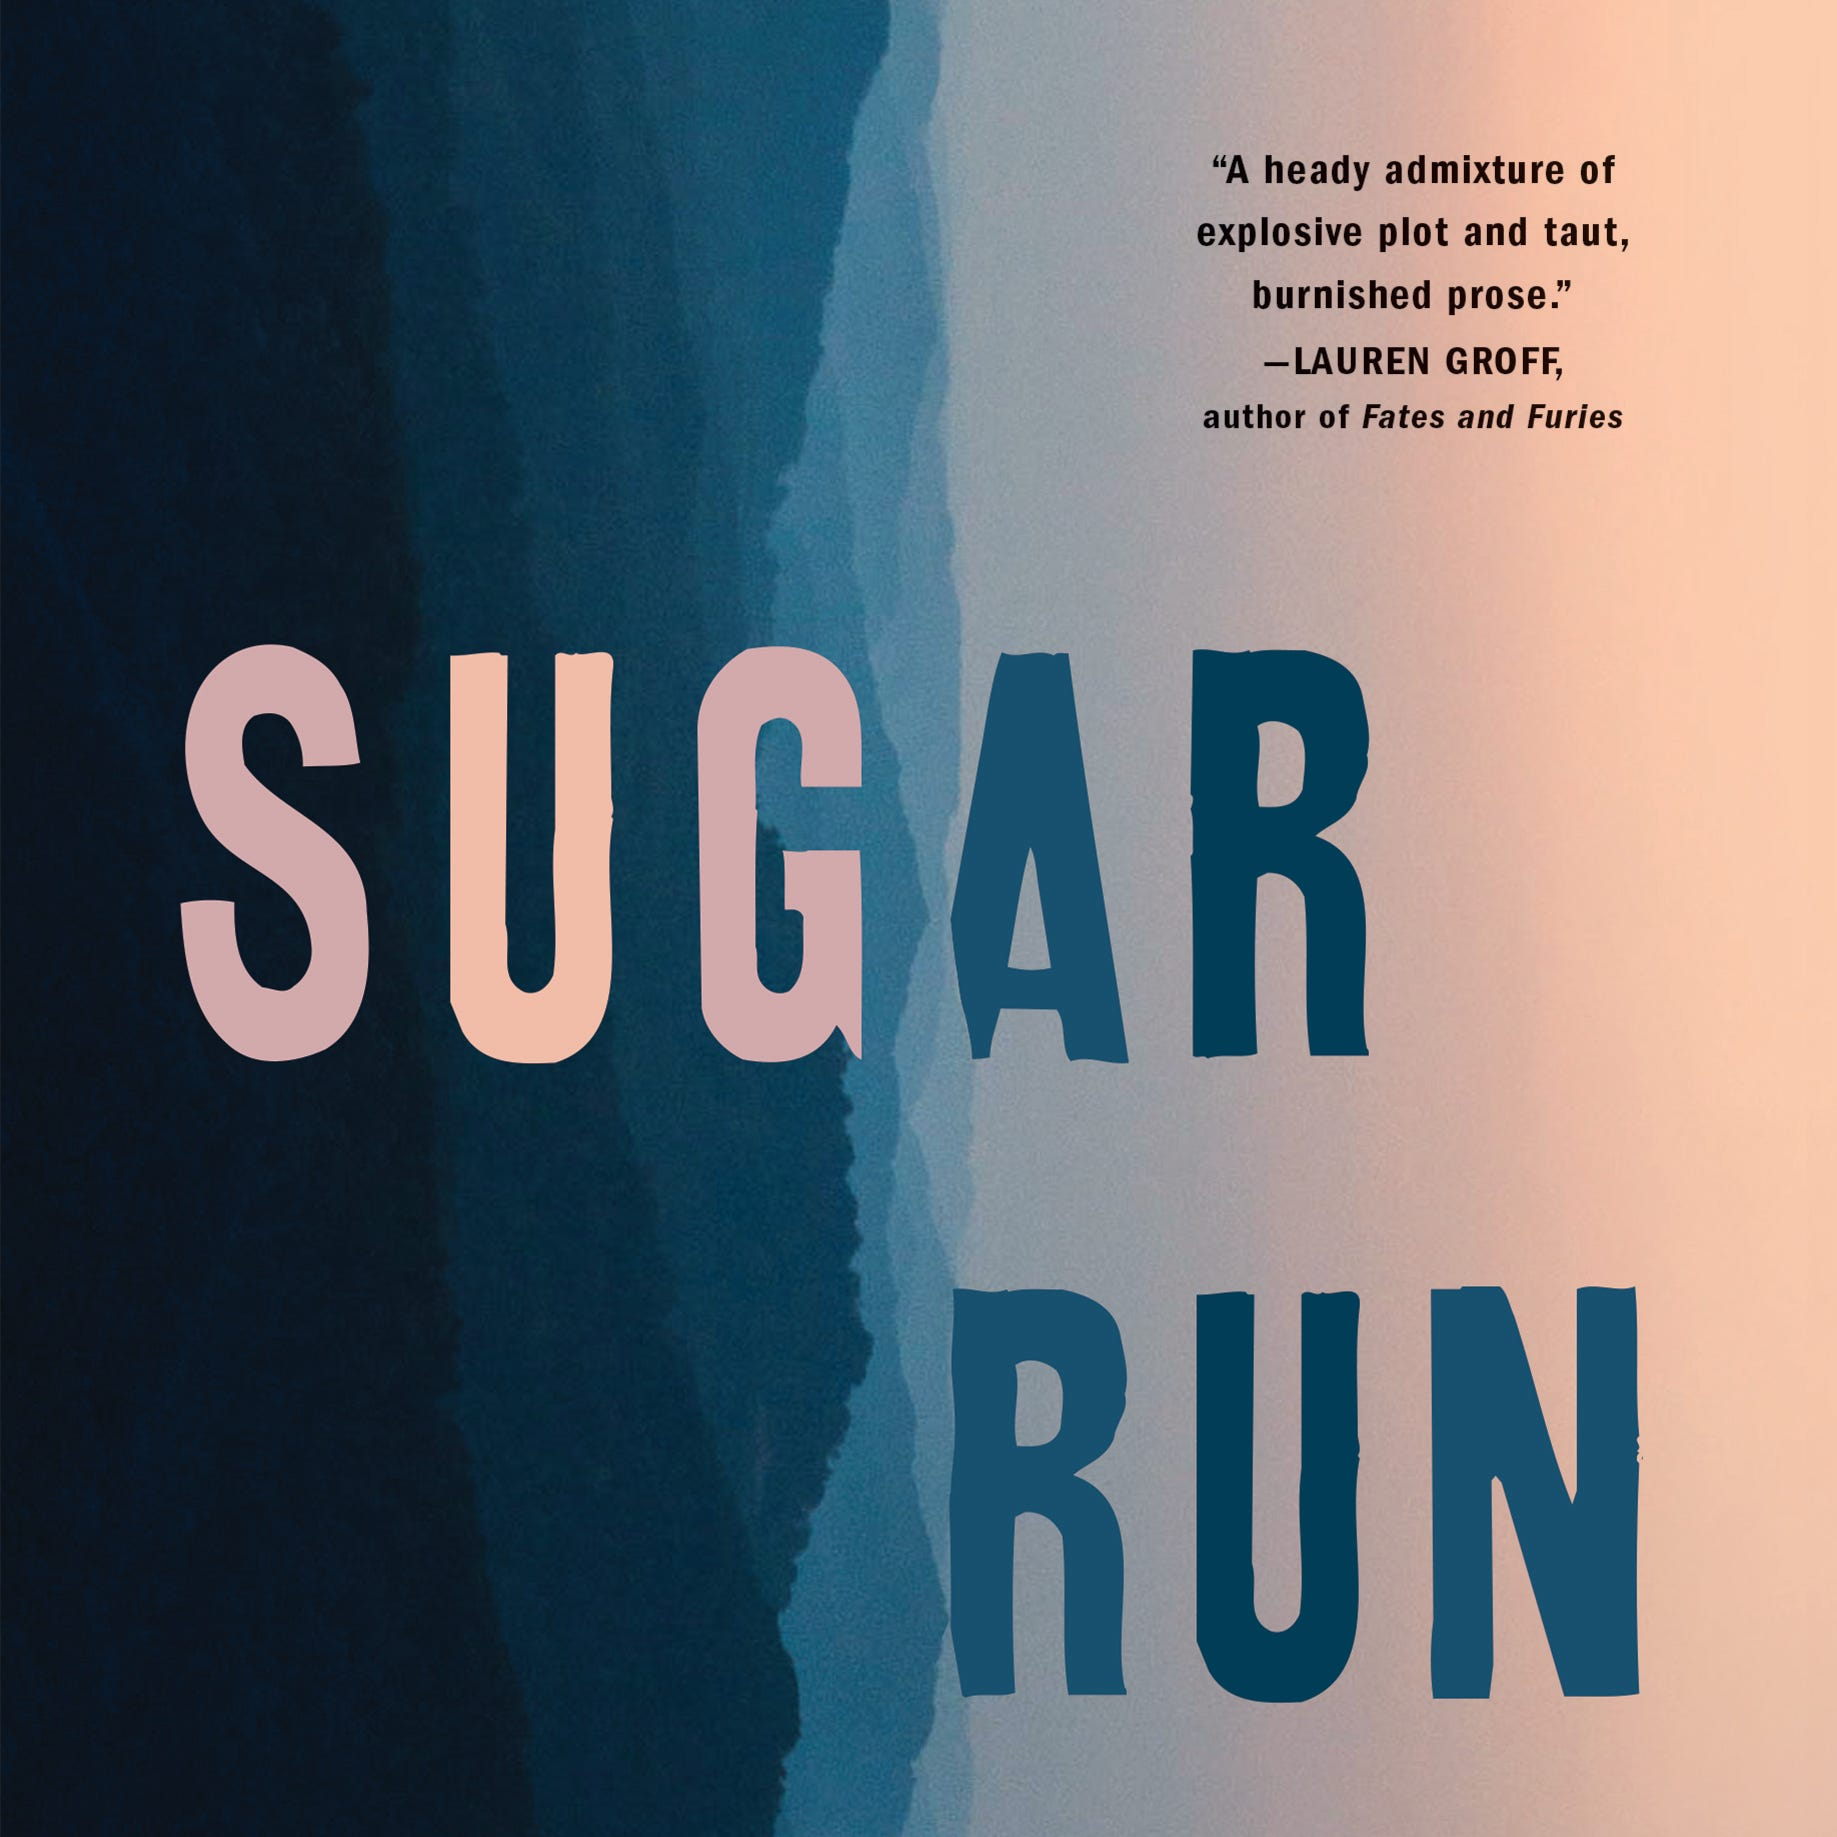 Mesha Maren's debut novel, 'Sugar Run,' a tale of suspense, gritty realism in Appalachia